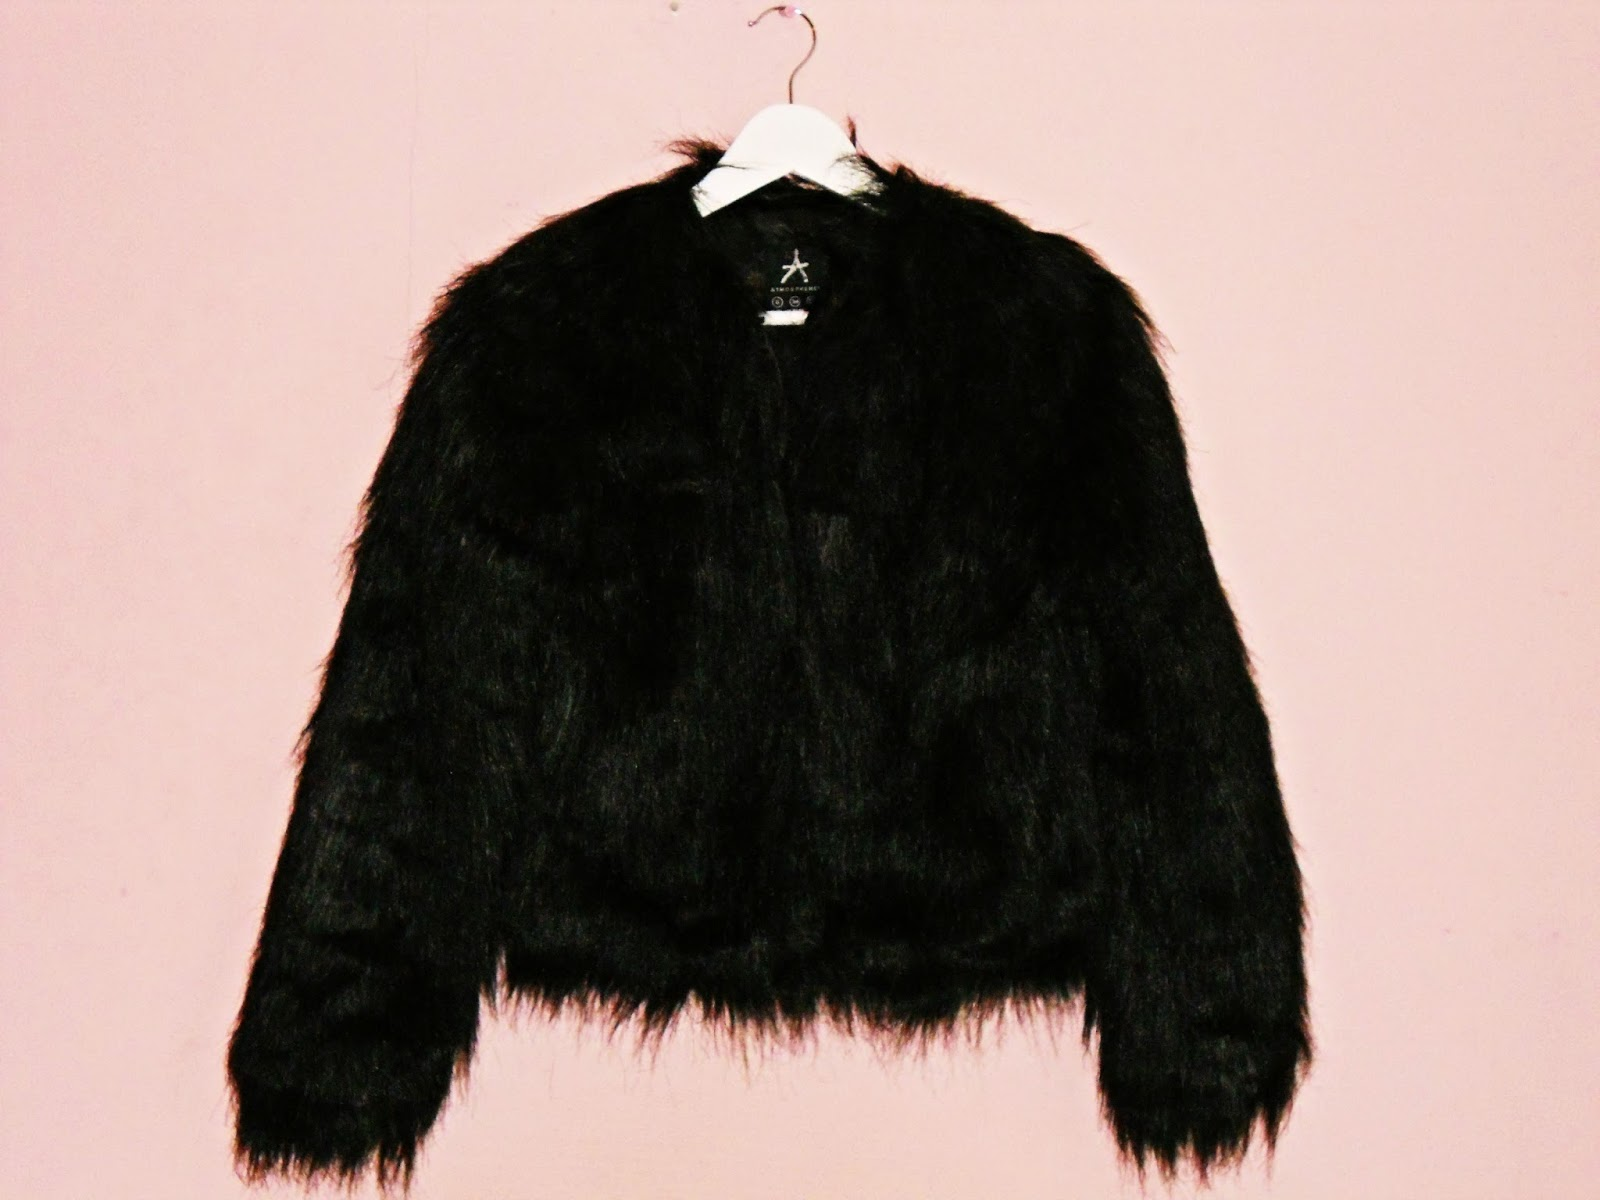 Primark Den Haag haul black faux fur coat